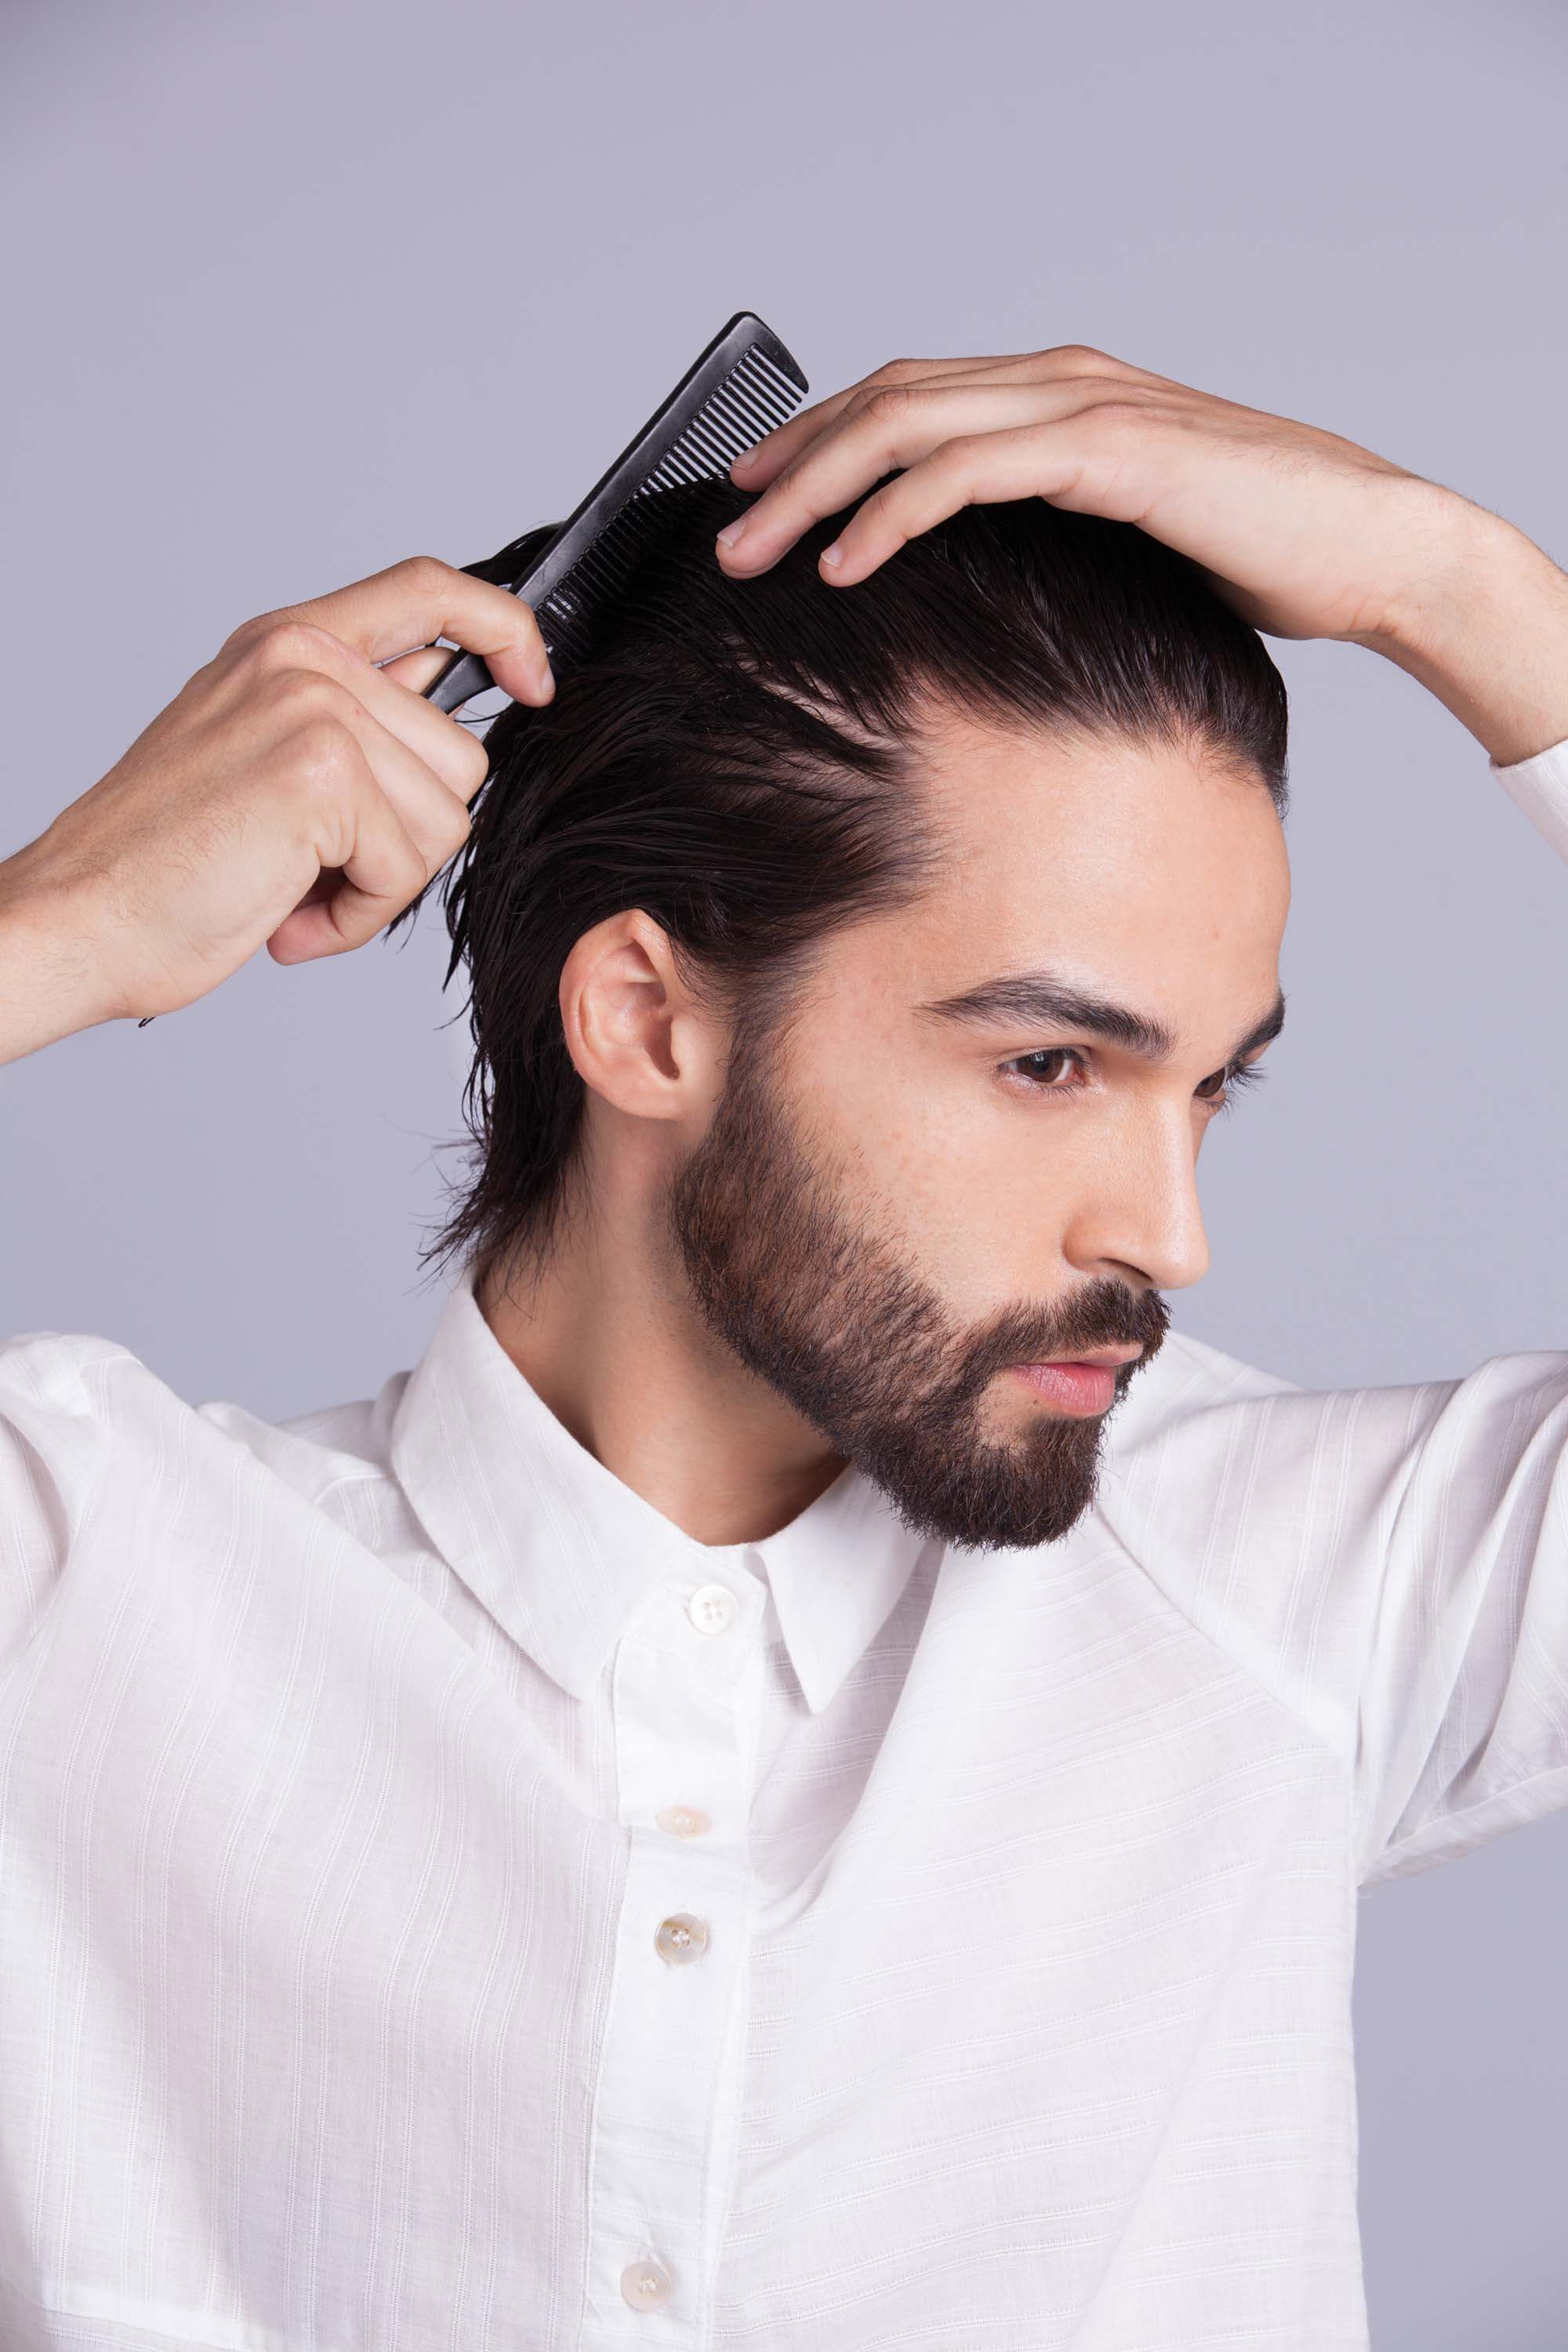 How To Use The Hair Gel Hair Gel For Men Long Hair Styles Men Hair Gel